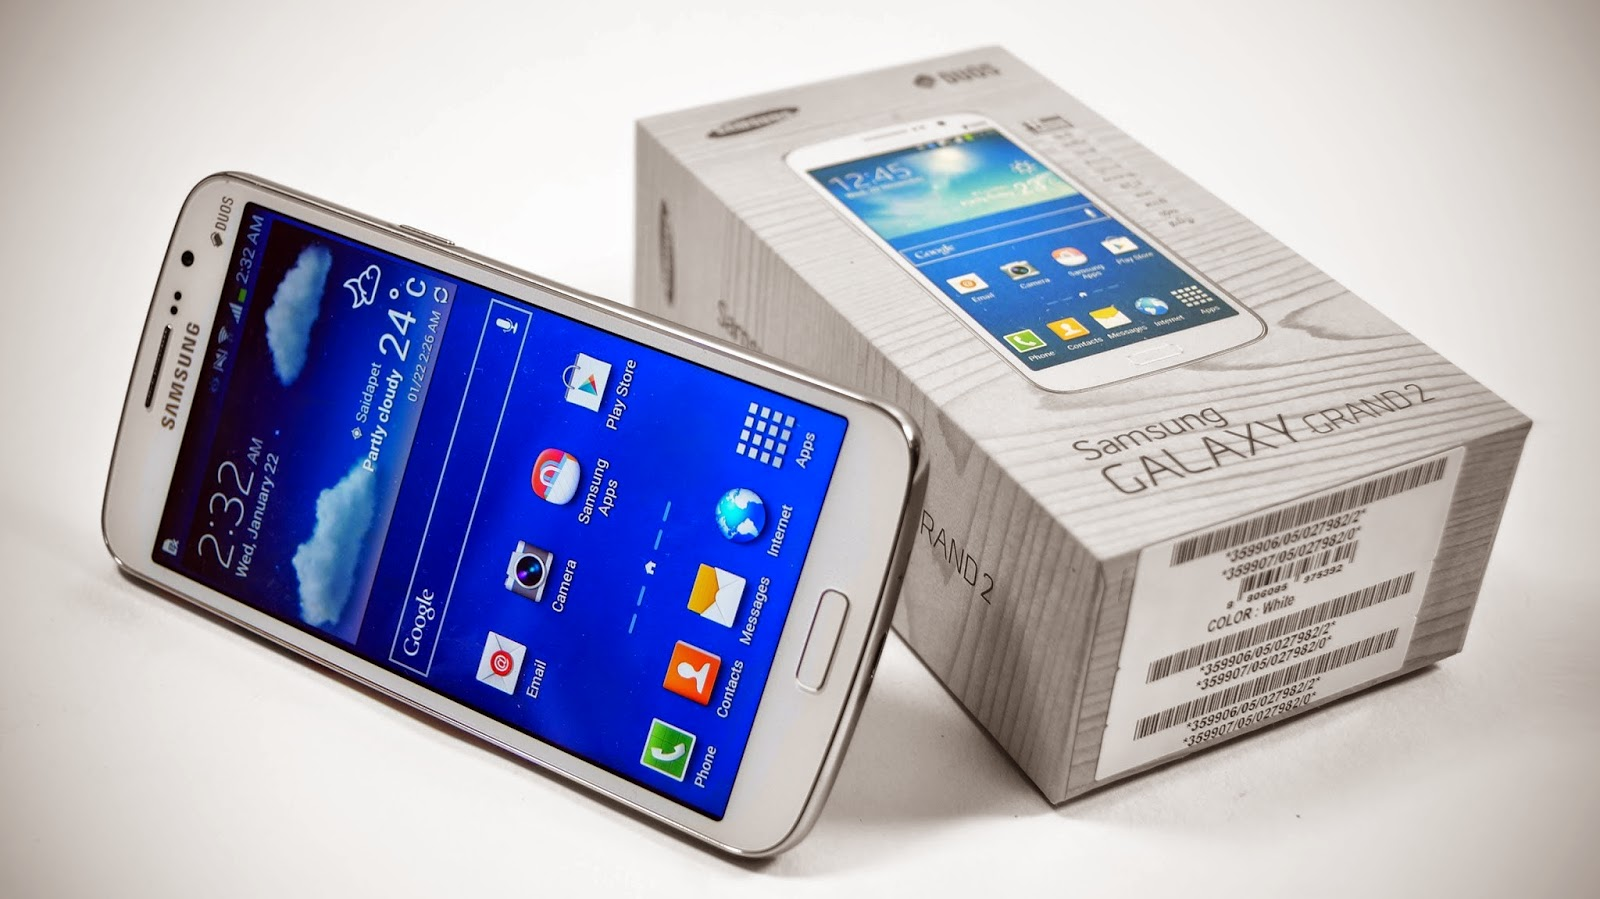 Samsung Galaxy Grand 2 Price, Full Specification & Hands On